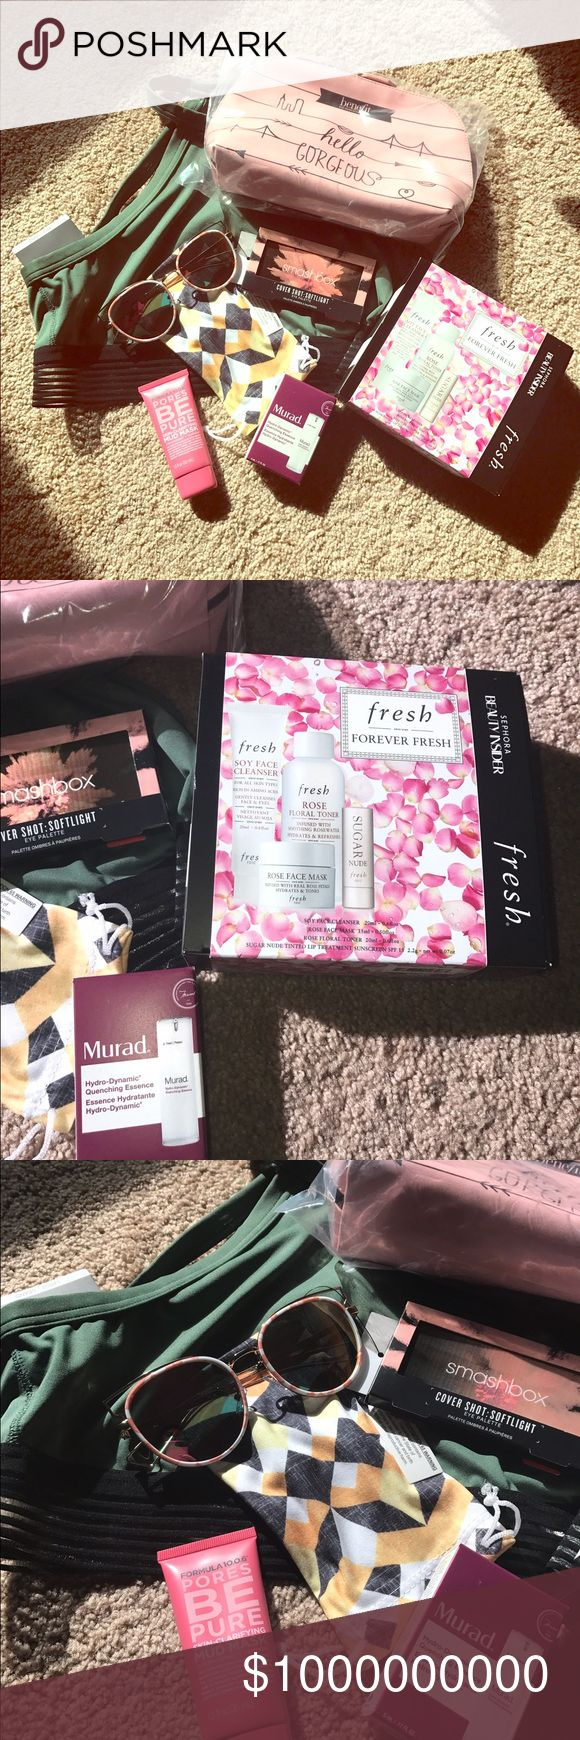 GIVE AWAY!!!!Read for details 👇🏽 Another give away!!! How to enter!? MUST FOLLOW✅, SHARE THIS LISTING♻️, AND LIKE THIS LISTING❤️!!!! Winner receives Large Green VS Cropped Bra, Benefit Makeup Bag, Gorgeous pink lens sunglass, new smash box cover shot eye palette in soft light, Forever Fresh Kit, Murad Hydro-Dynamic Essence, and Formula mud mask!!! Winner will be chosen by random generator and announced on April 30th!!! Must enter by the 29th. I check to make sure you did all of above…